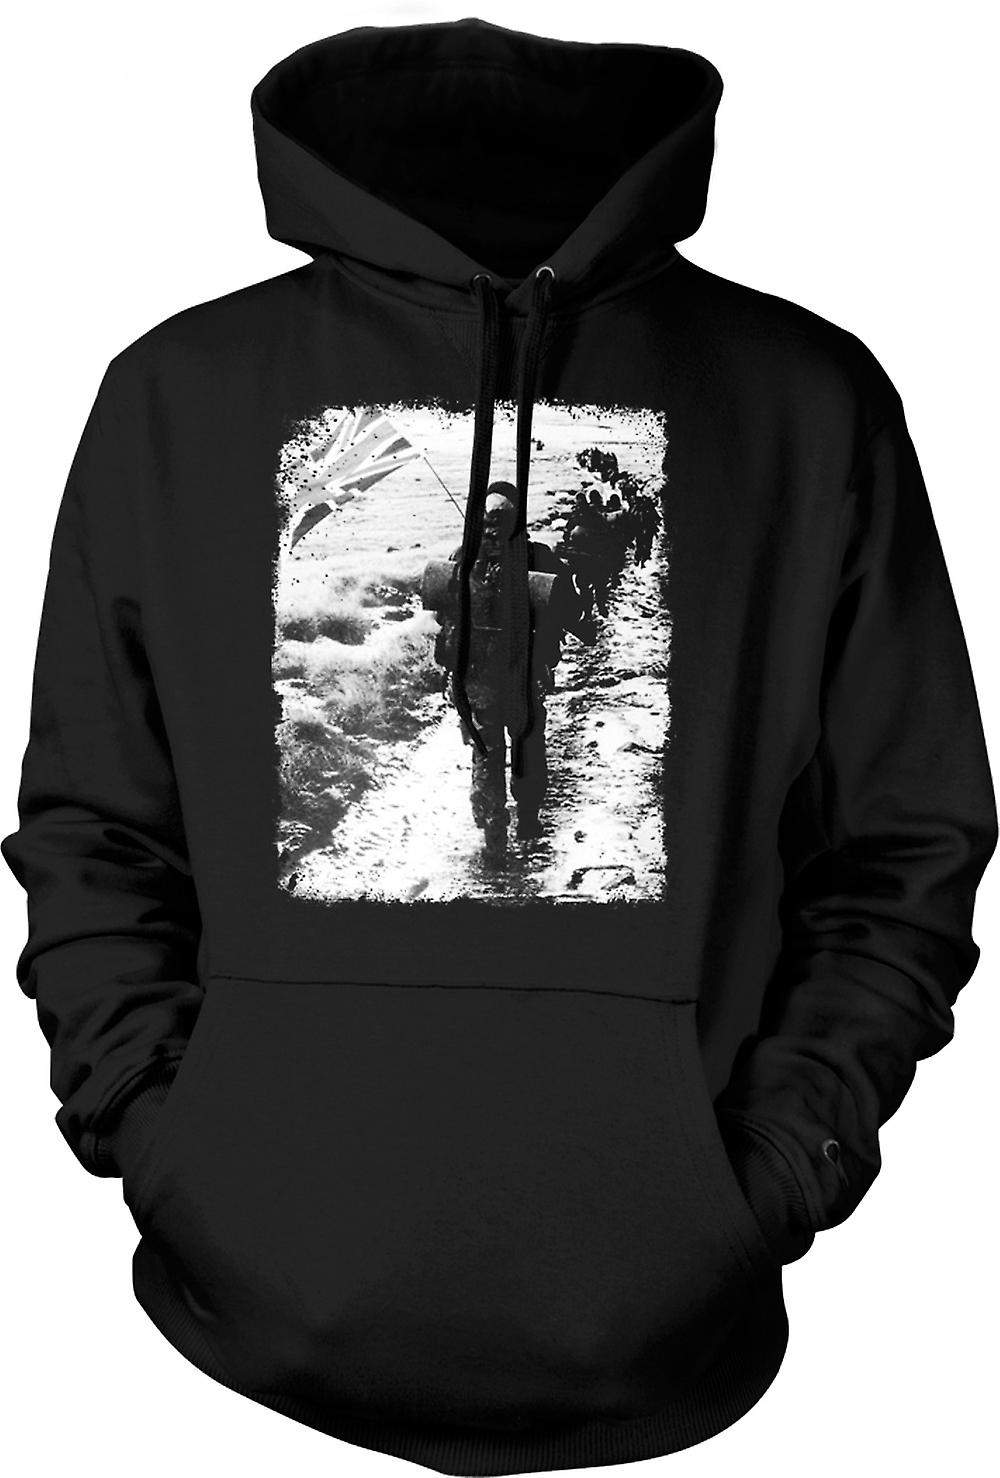 Mens Hoodie - Royal Marines Falklands Yomp